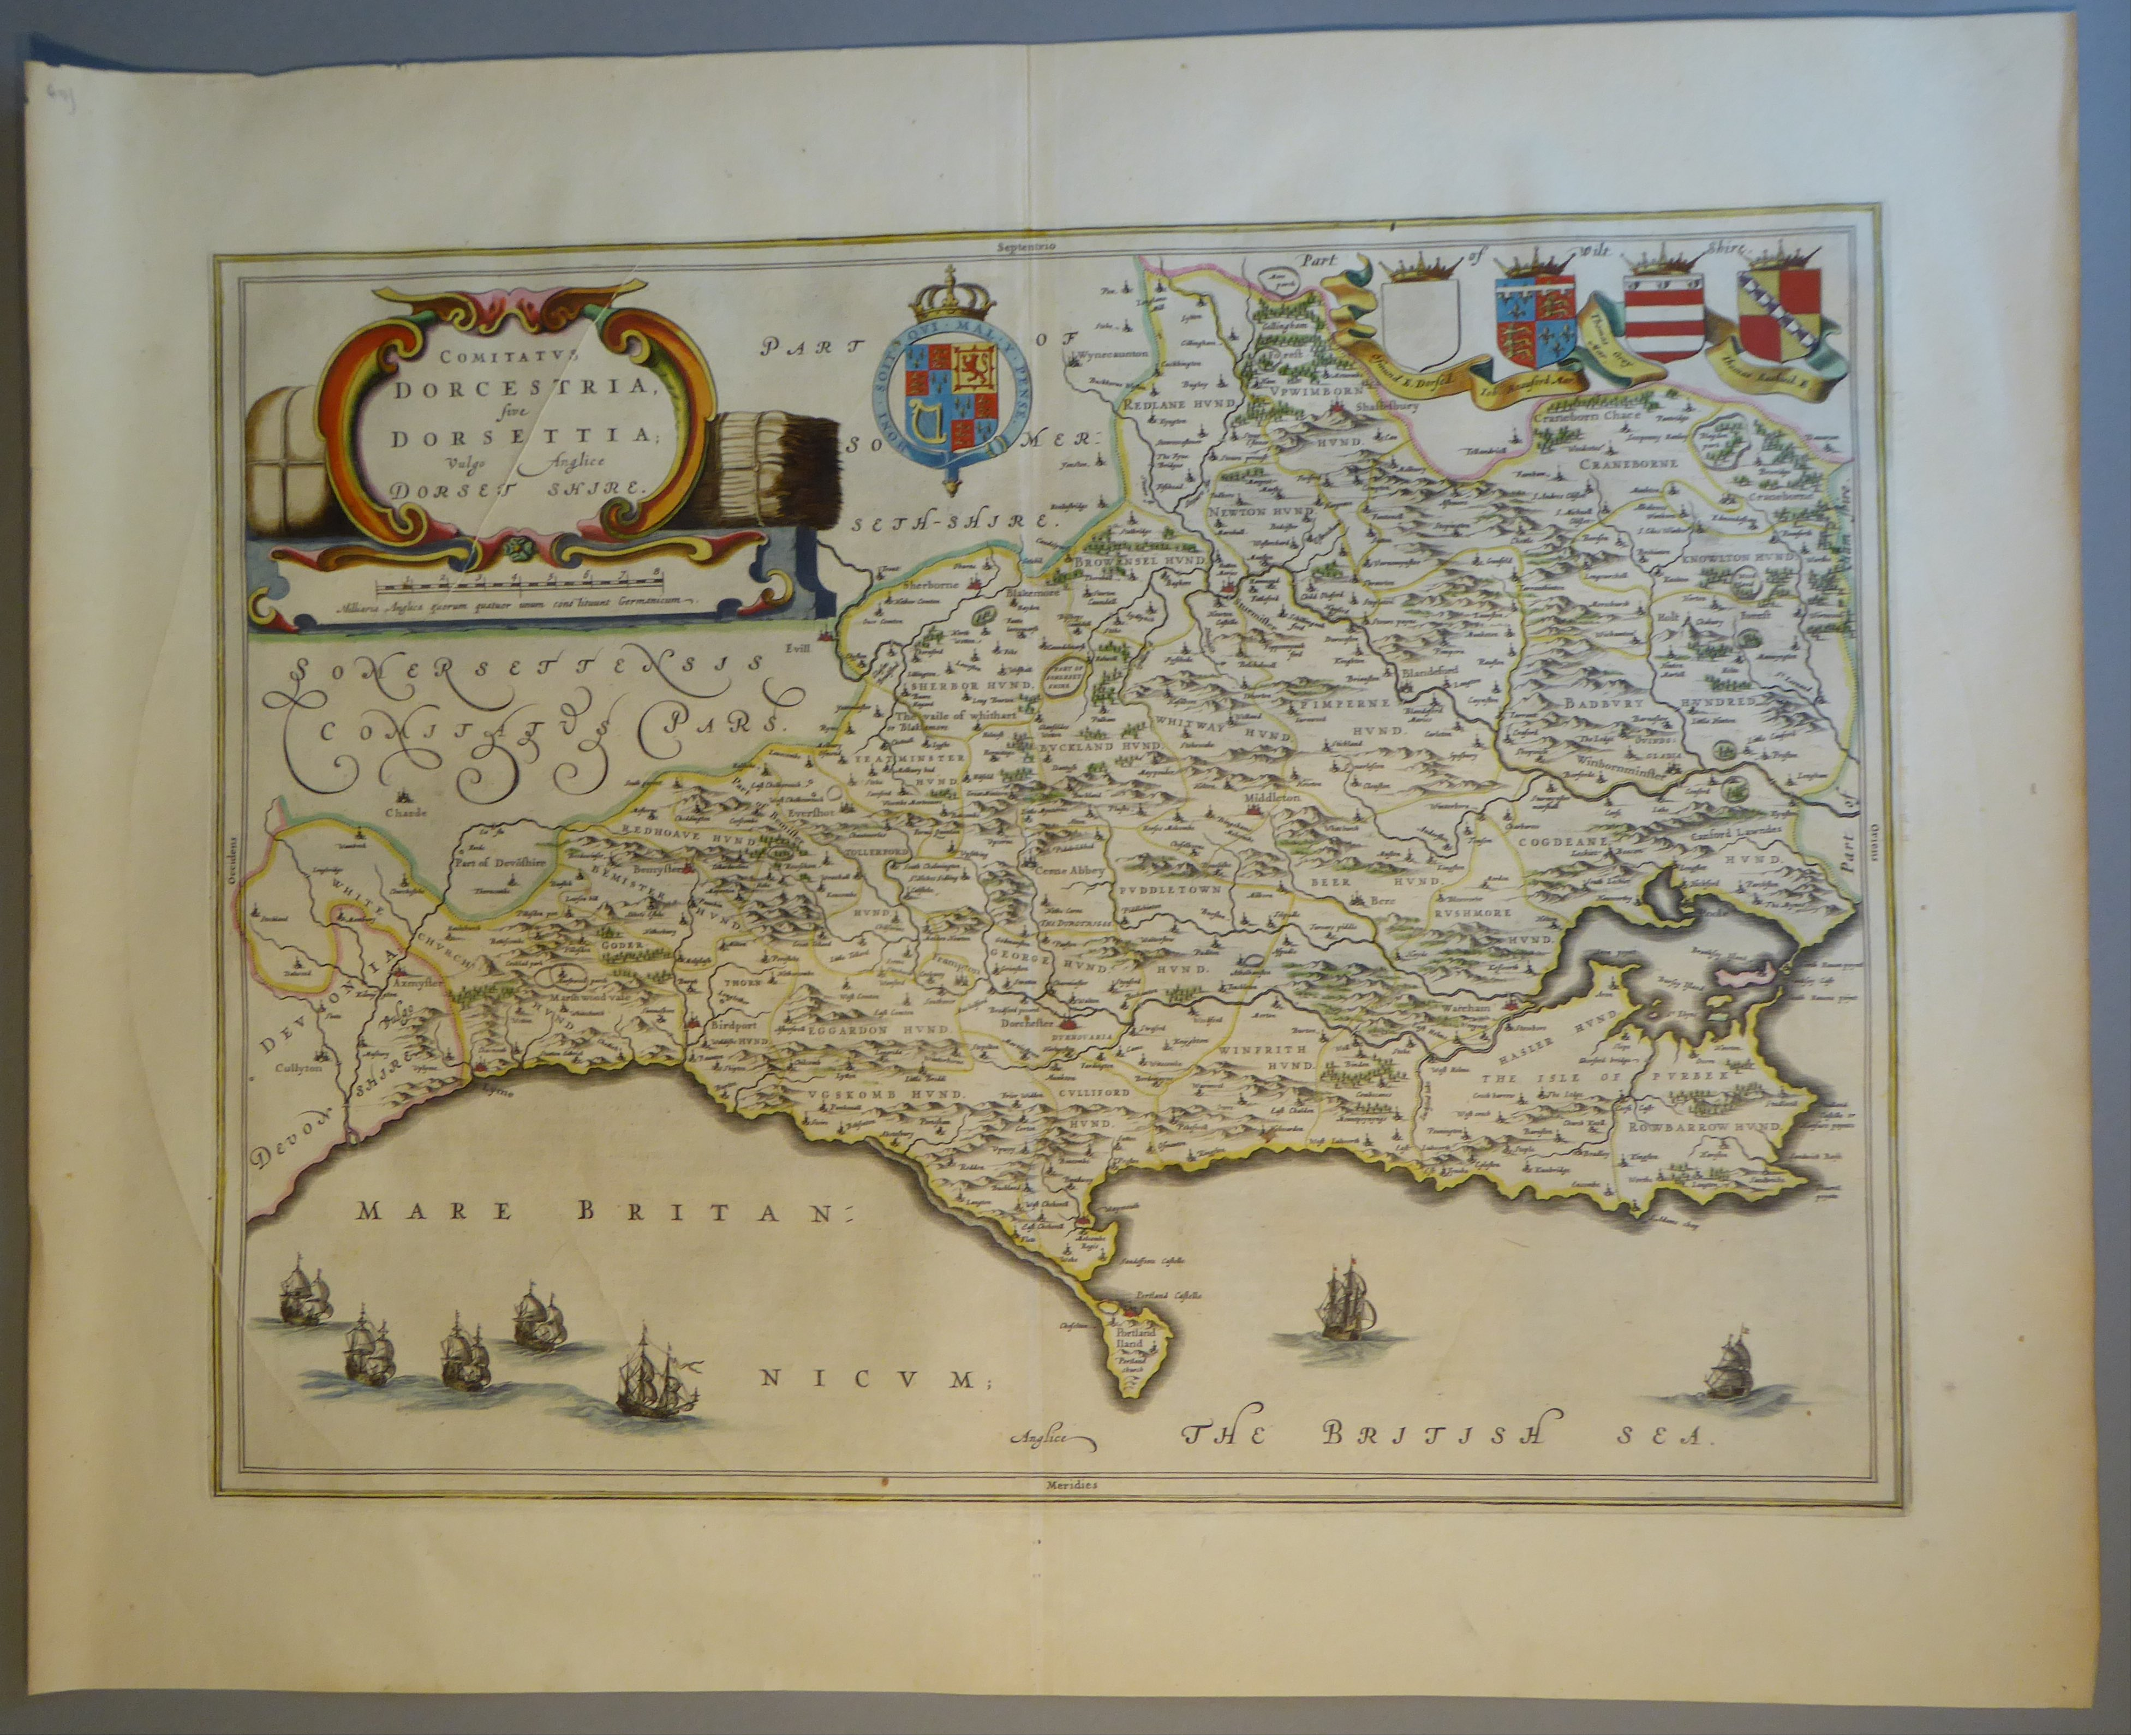 Lot 55 - A C17th hand coloured copper engraved map of Dorsetshire by William Blaeu, c1645